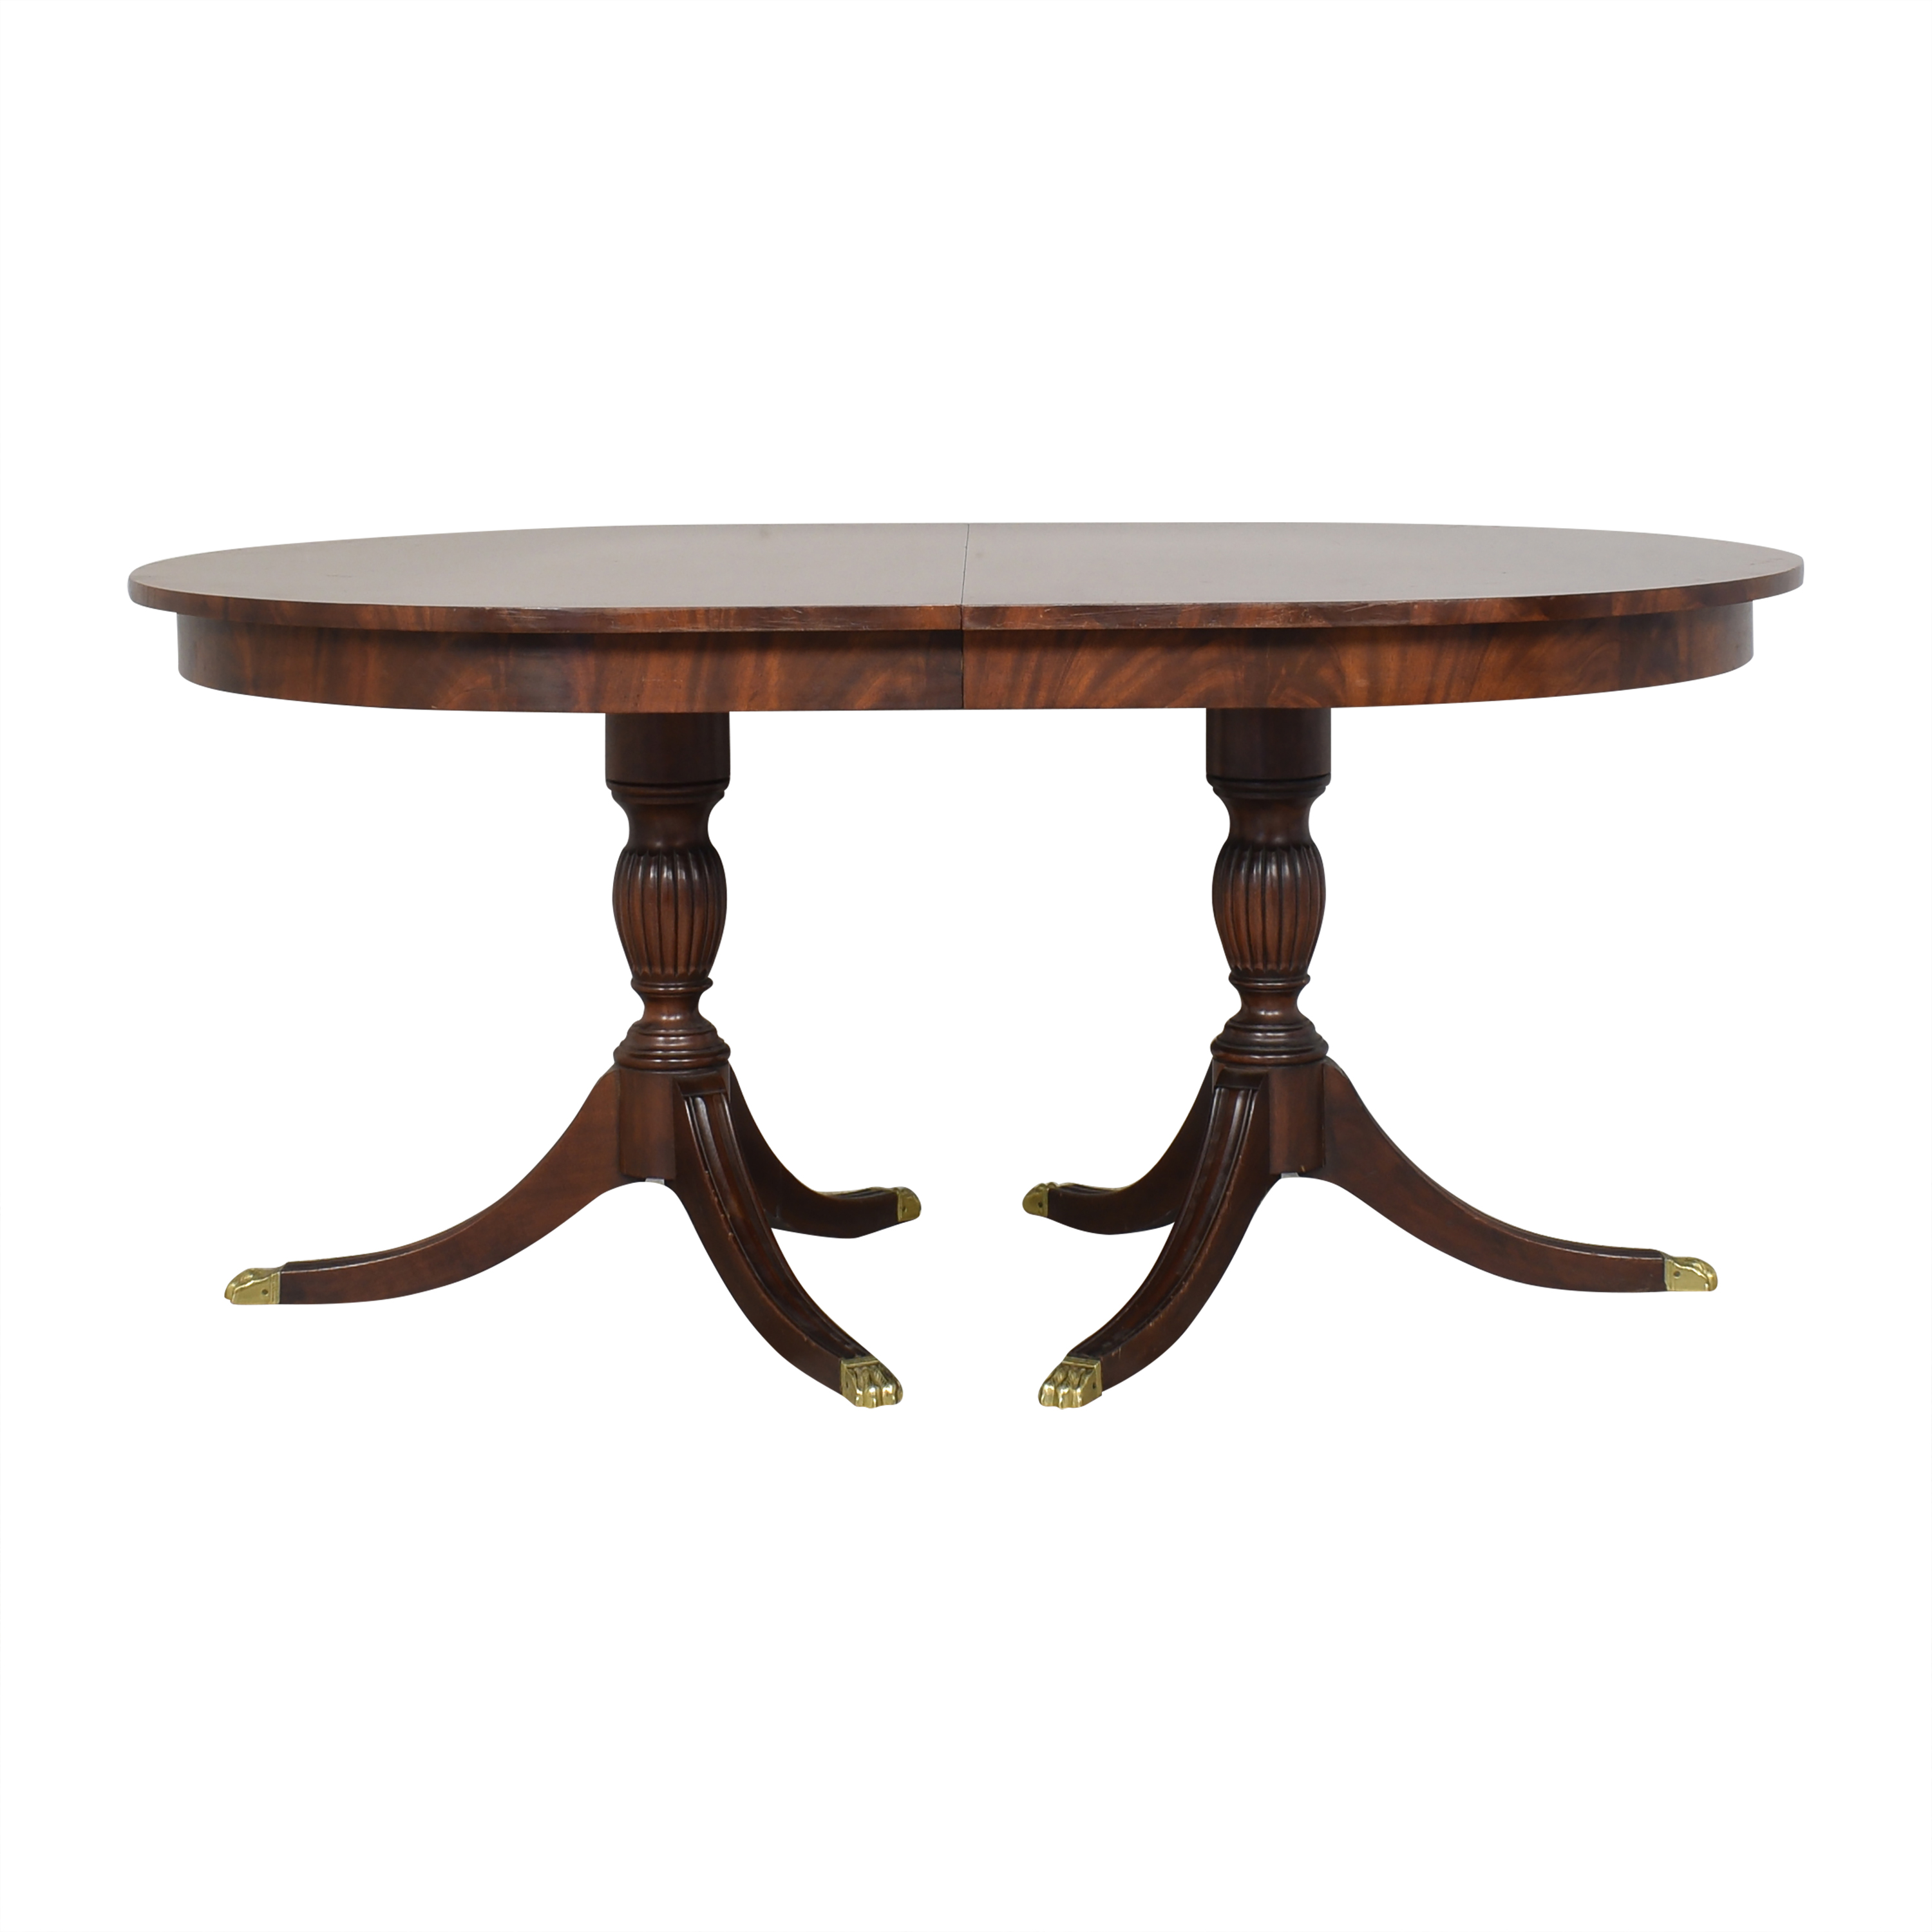 Henkel Harris Henkel Harris Double Pedestal Extendable Dining Table for sale